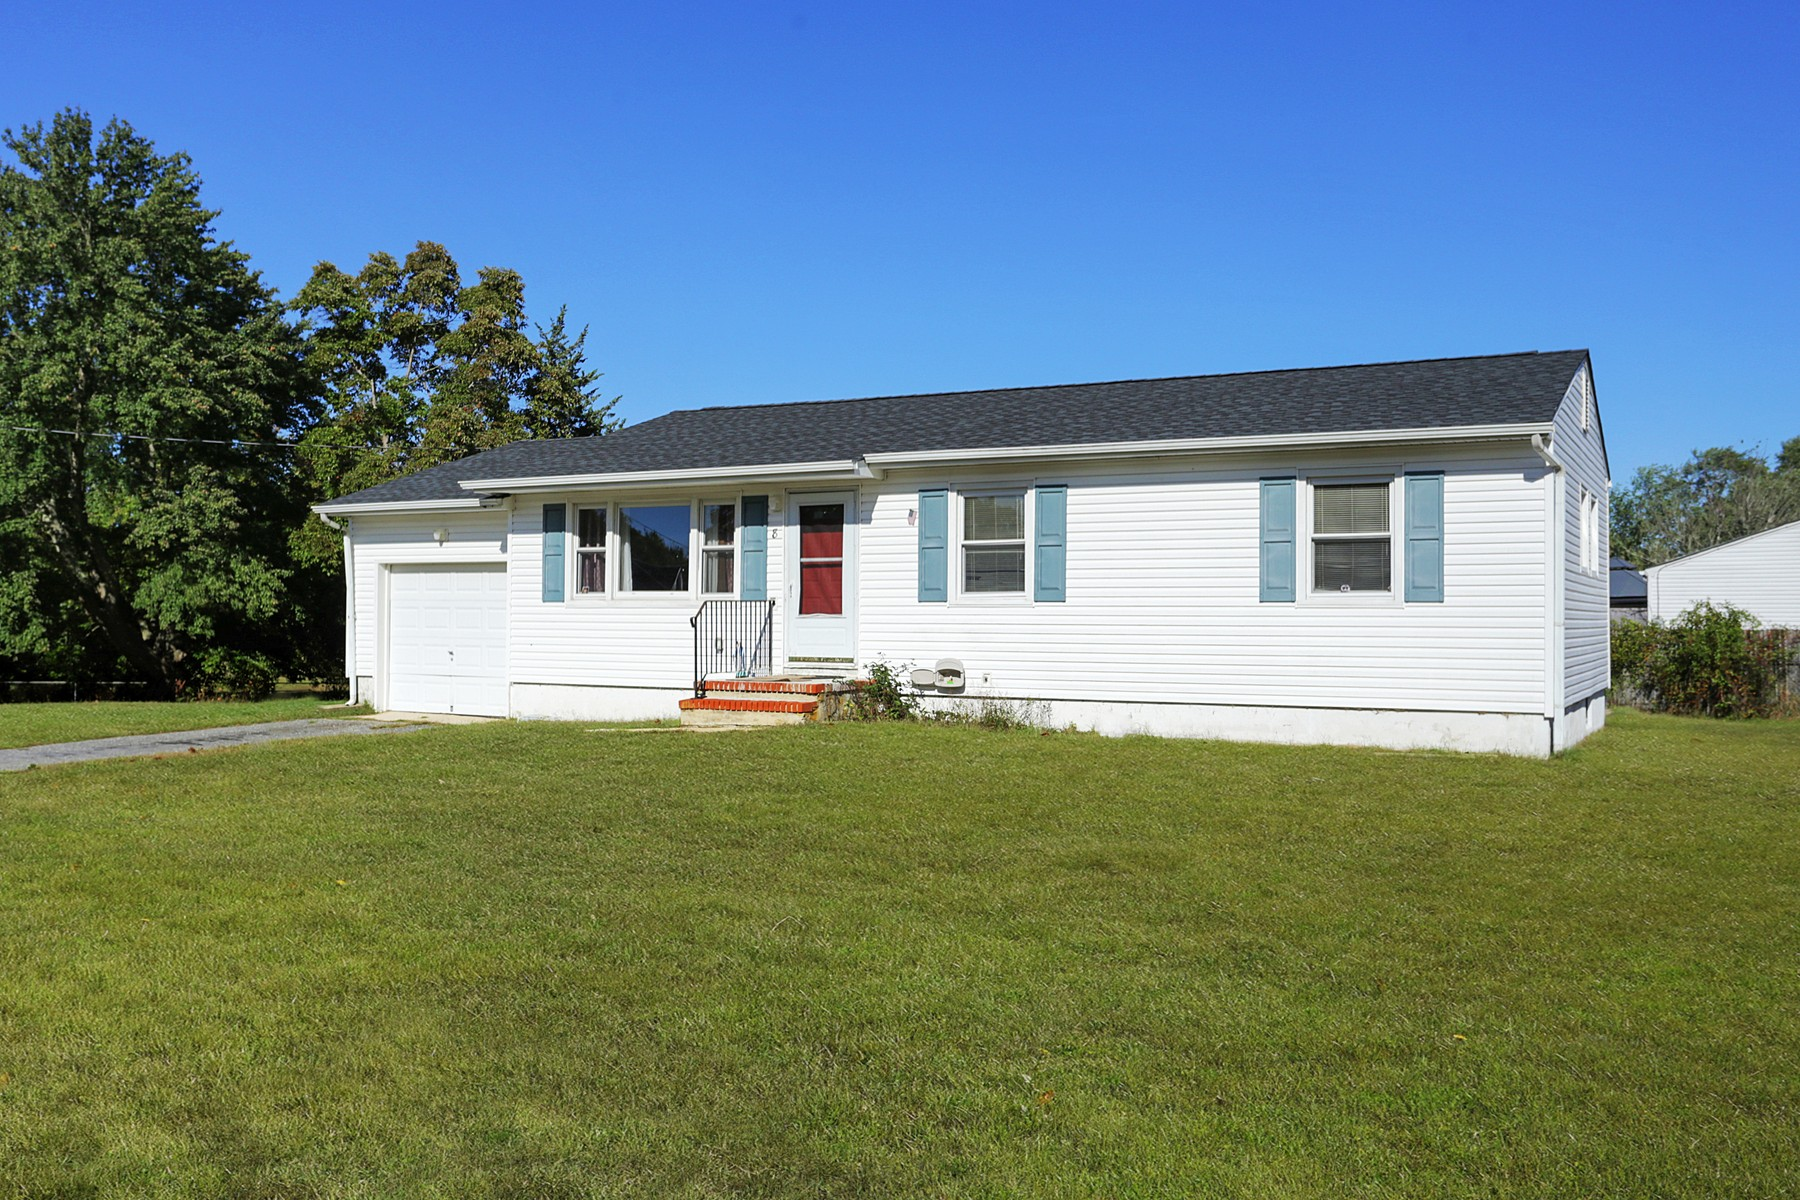 Single Family Homes for Active at 3 Bedroom Ranch 8 Glen Road Howell, New Jersey 07731 United States